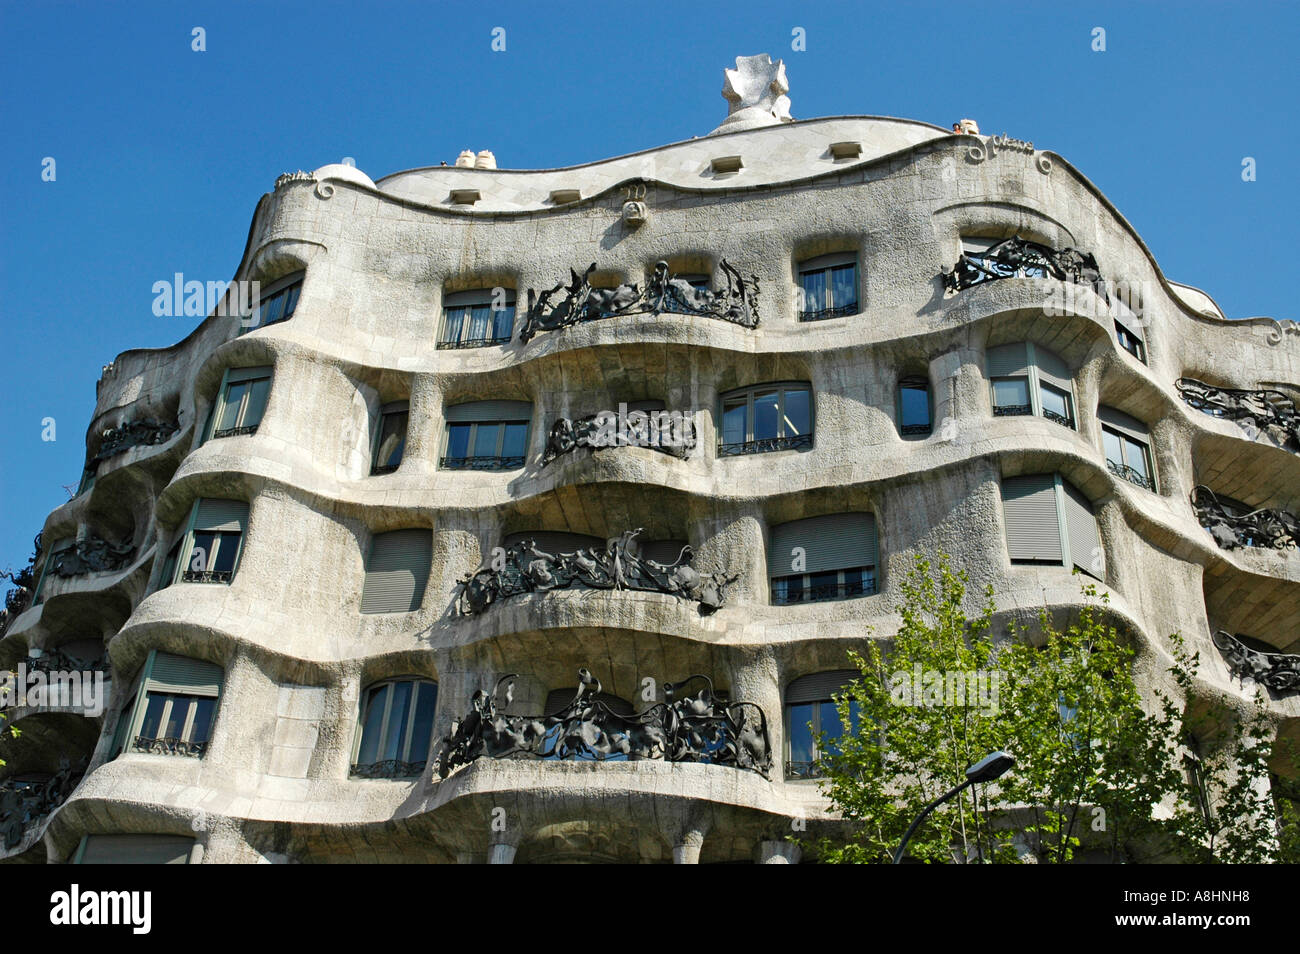 Hausfassade casa mila architekt antoni gaudi passeig de gracia stock photo royalty free - Architekt barcelona ...